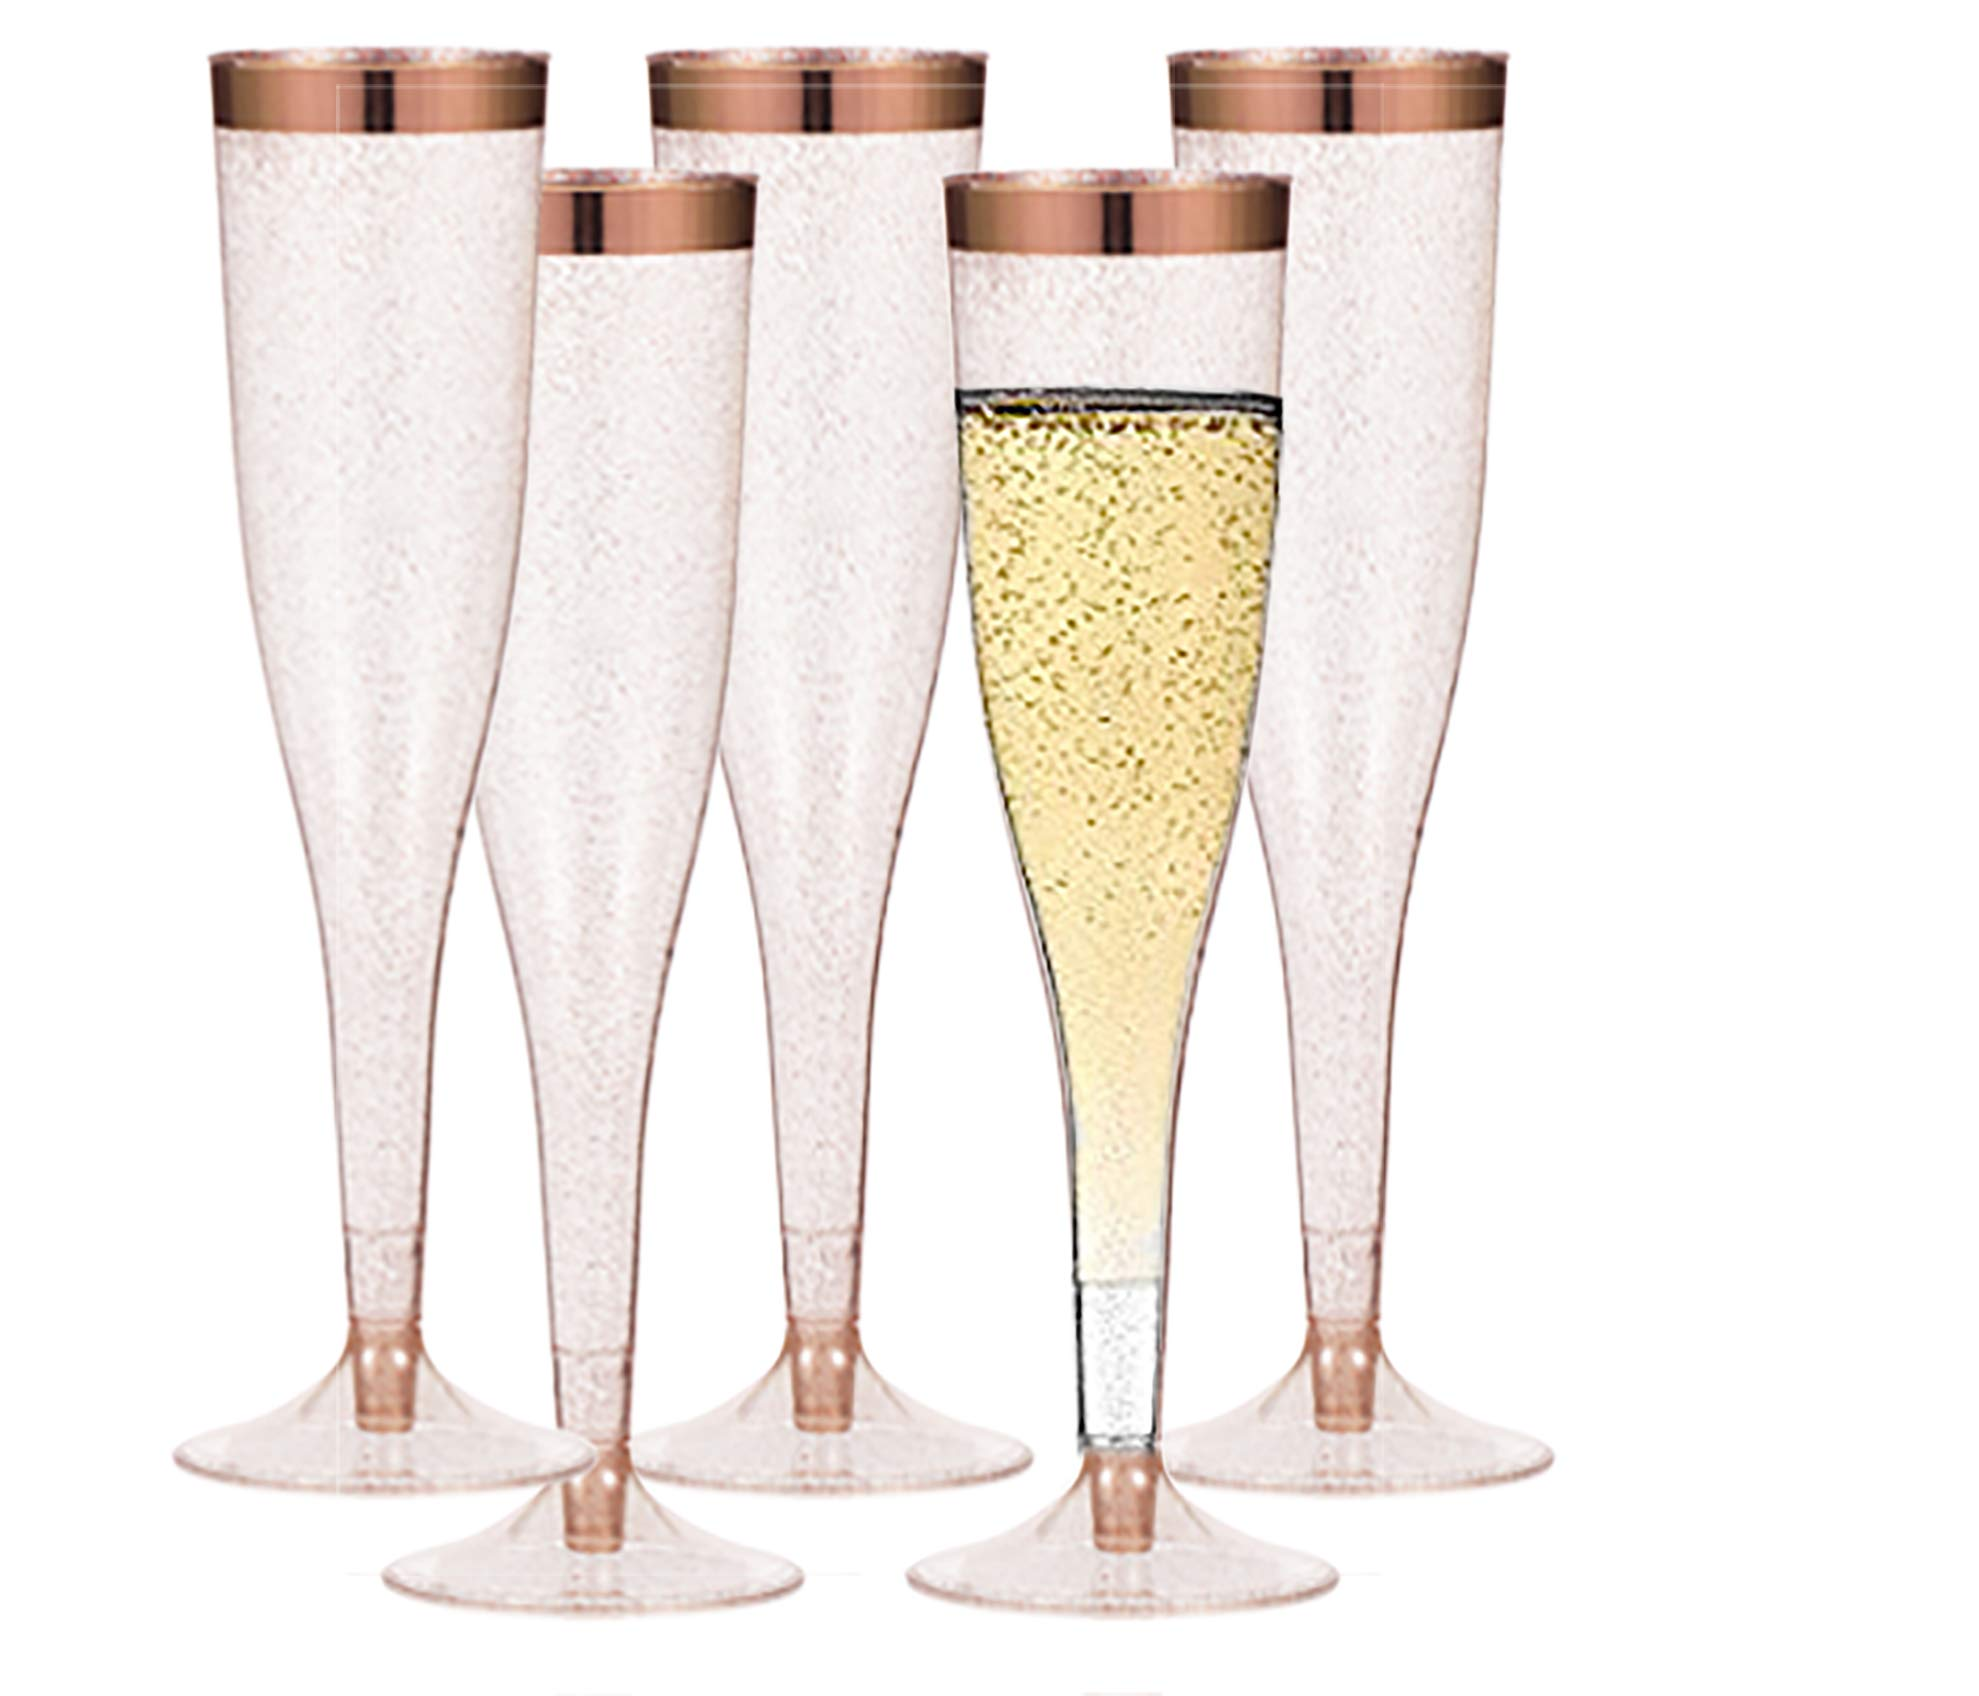 Rose Gold Plastic Champagne Flutes - 50-Pcs, Rose Gold Glitter, 6.5 Oz Heavy Duty Wine Glass, Clear Plastic Toasting Glasses, Rose Gold Rim Champagne Flutes, Plastic Wine Glasses for Parties